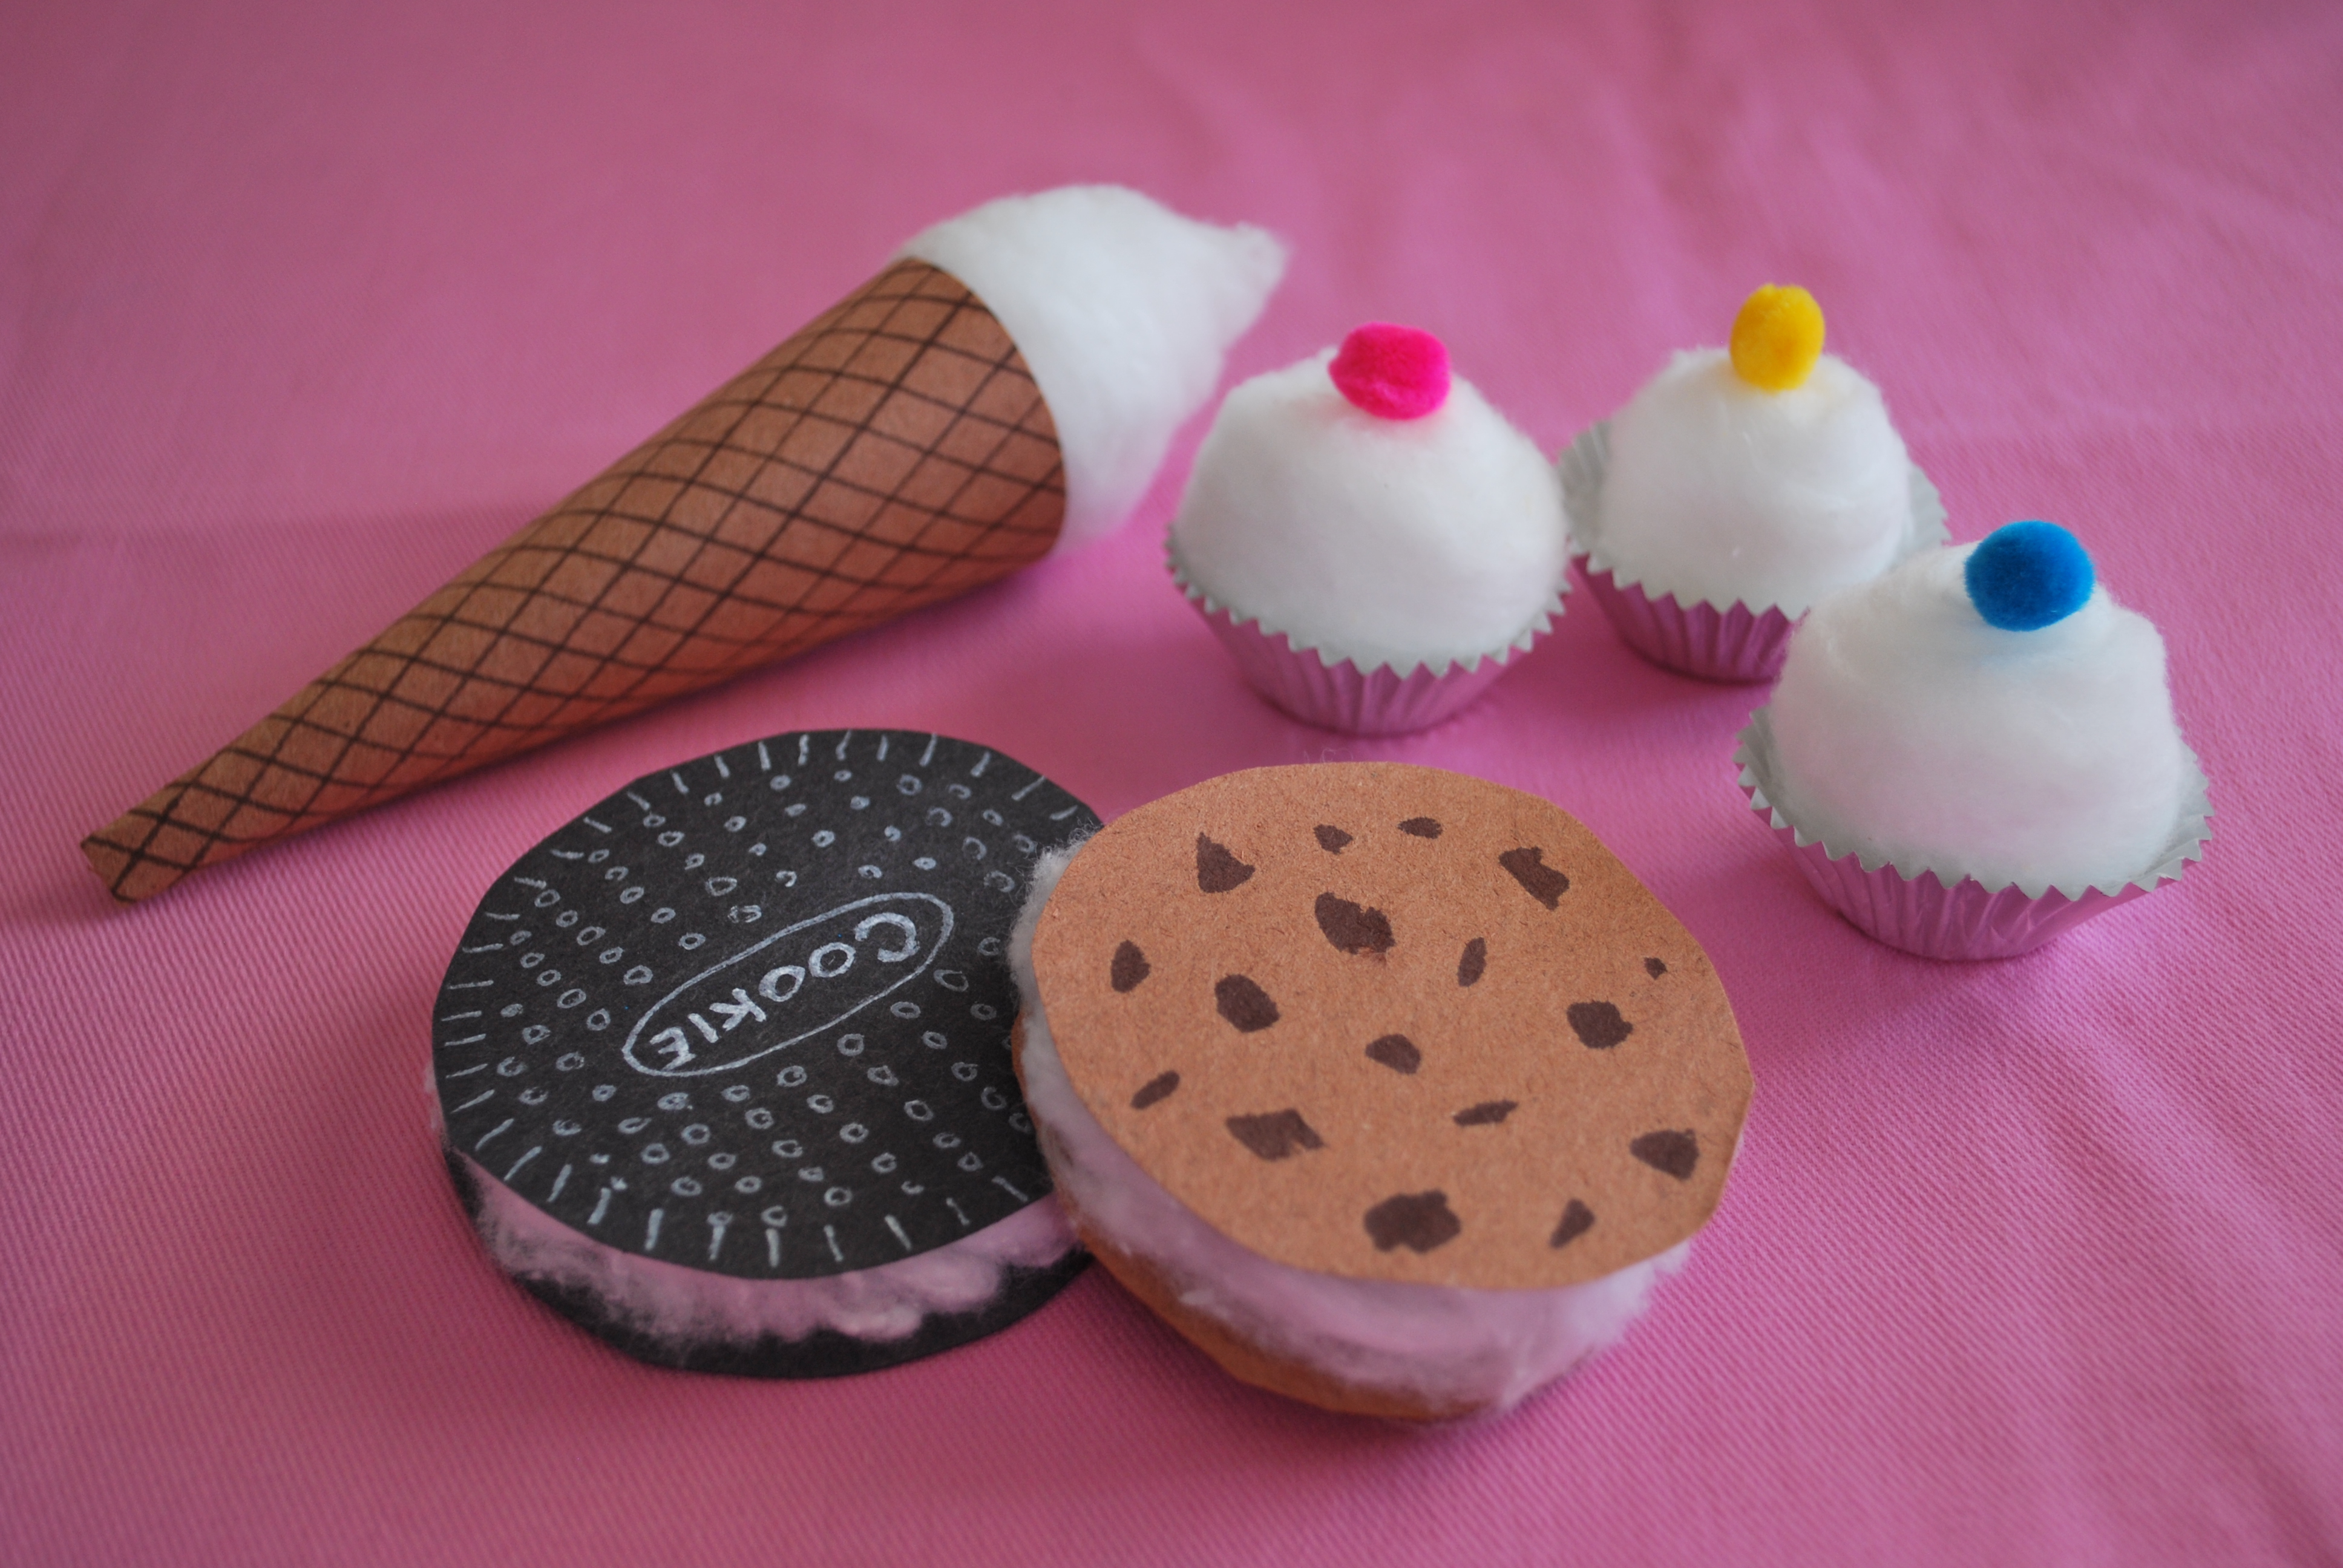 Cotton Cookies Ice Cream Cone And Cupcakes